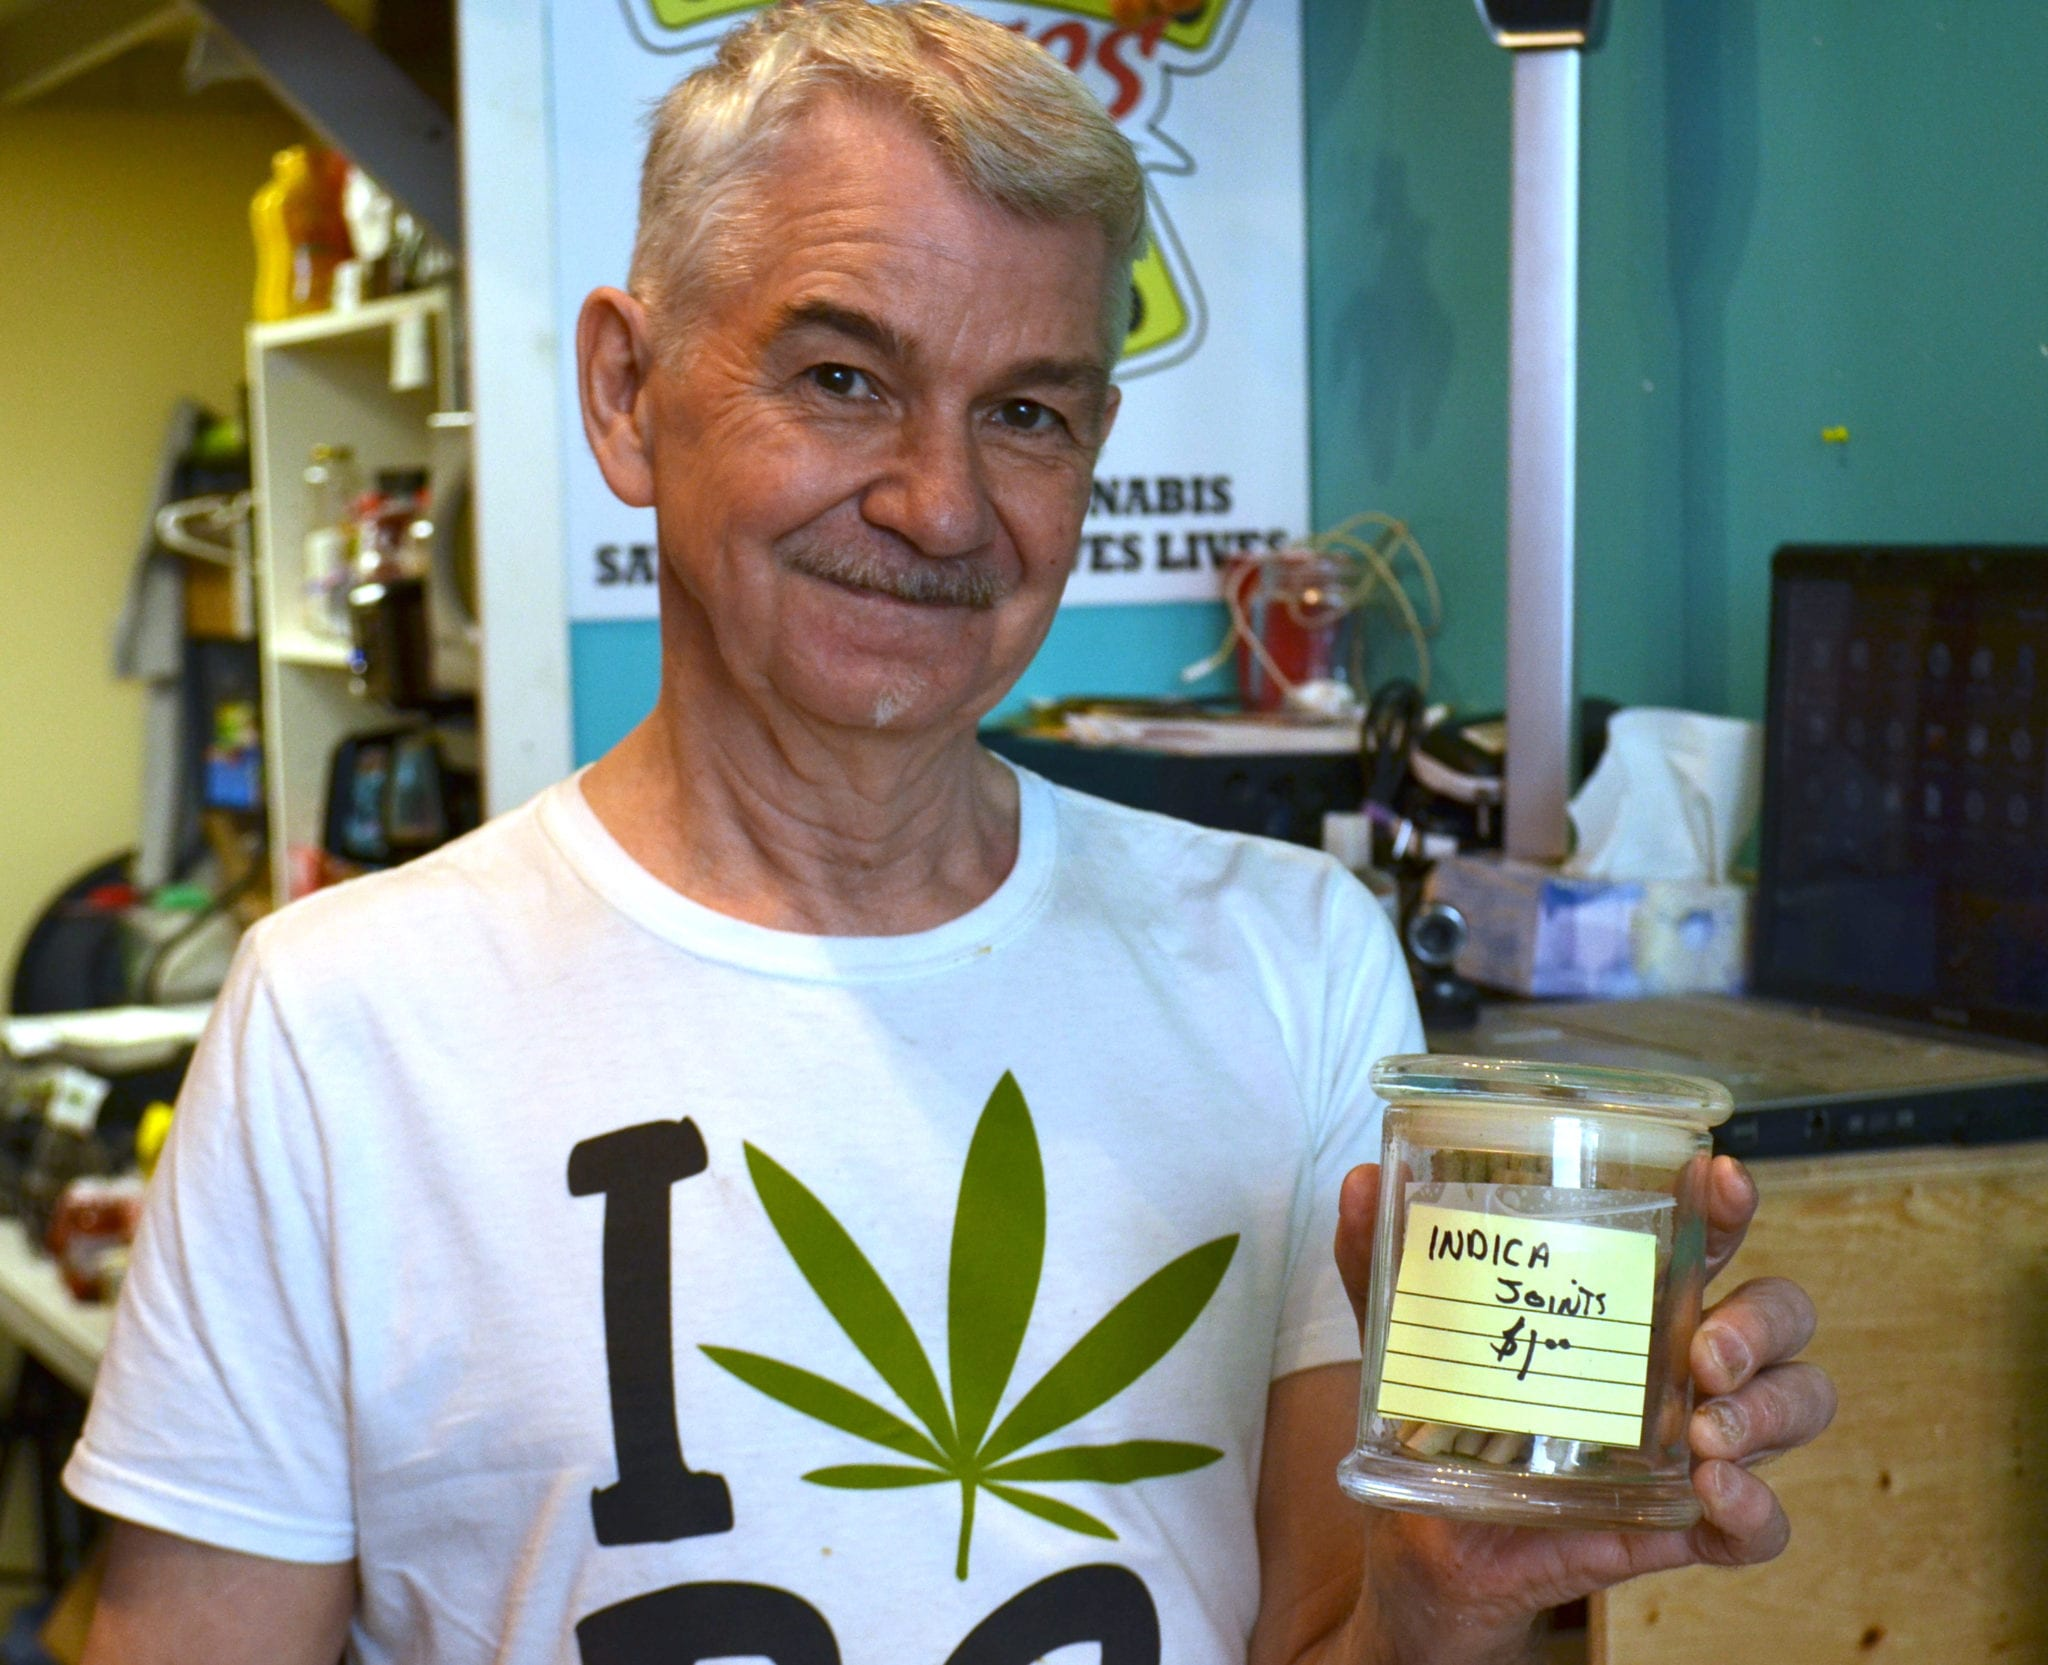 It actually works - Vancouver study shares stories of youth choosing weed over harder drugs - Neil Magnuson CSP